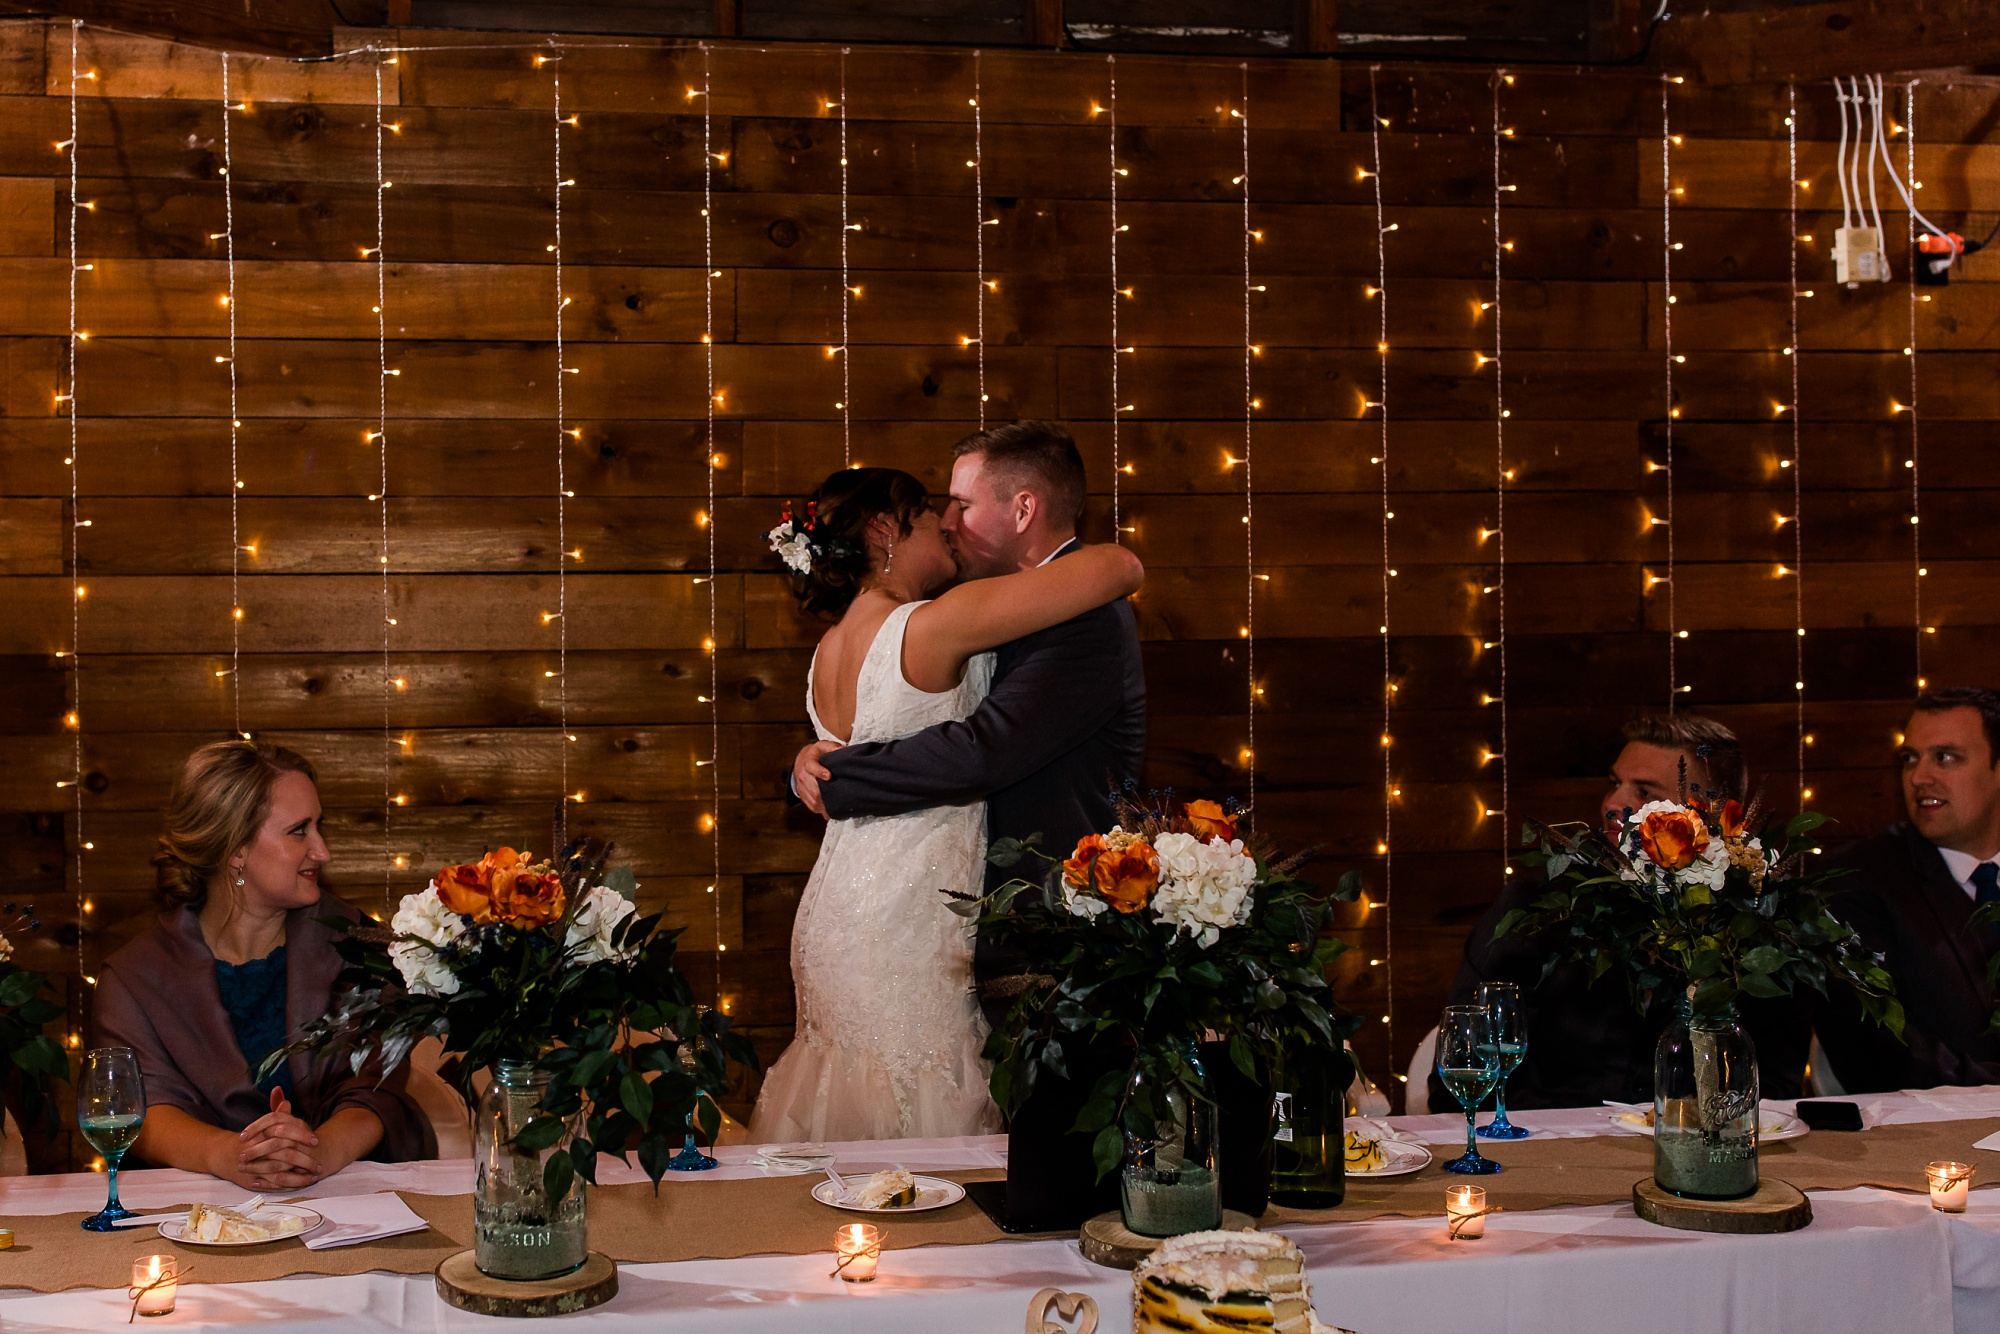 Amber Langerud Photography_Moohread, Outdoor, Barn Wedding at A Friends House_7149.jpg